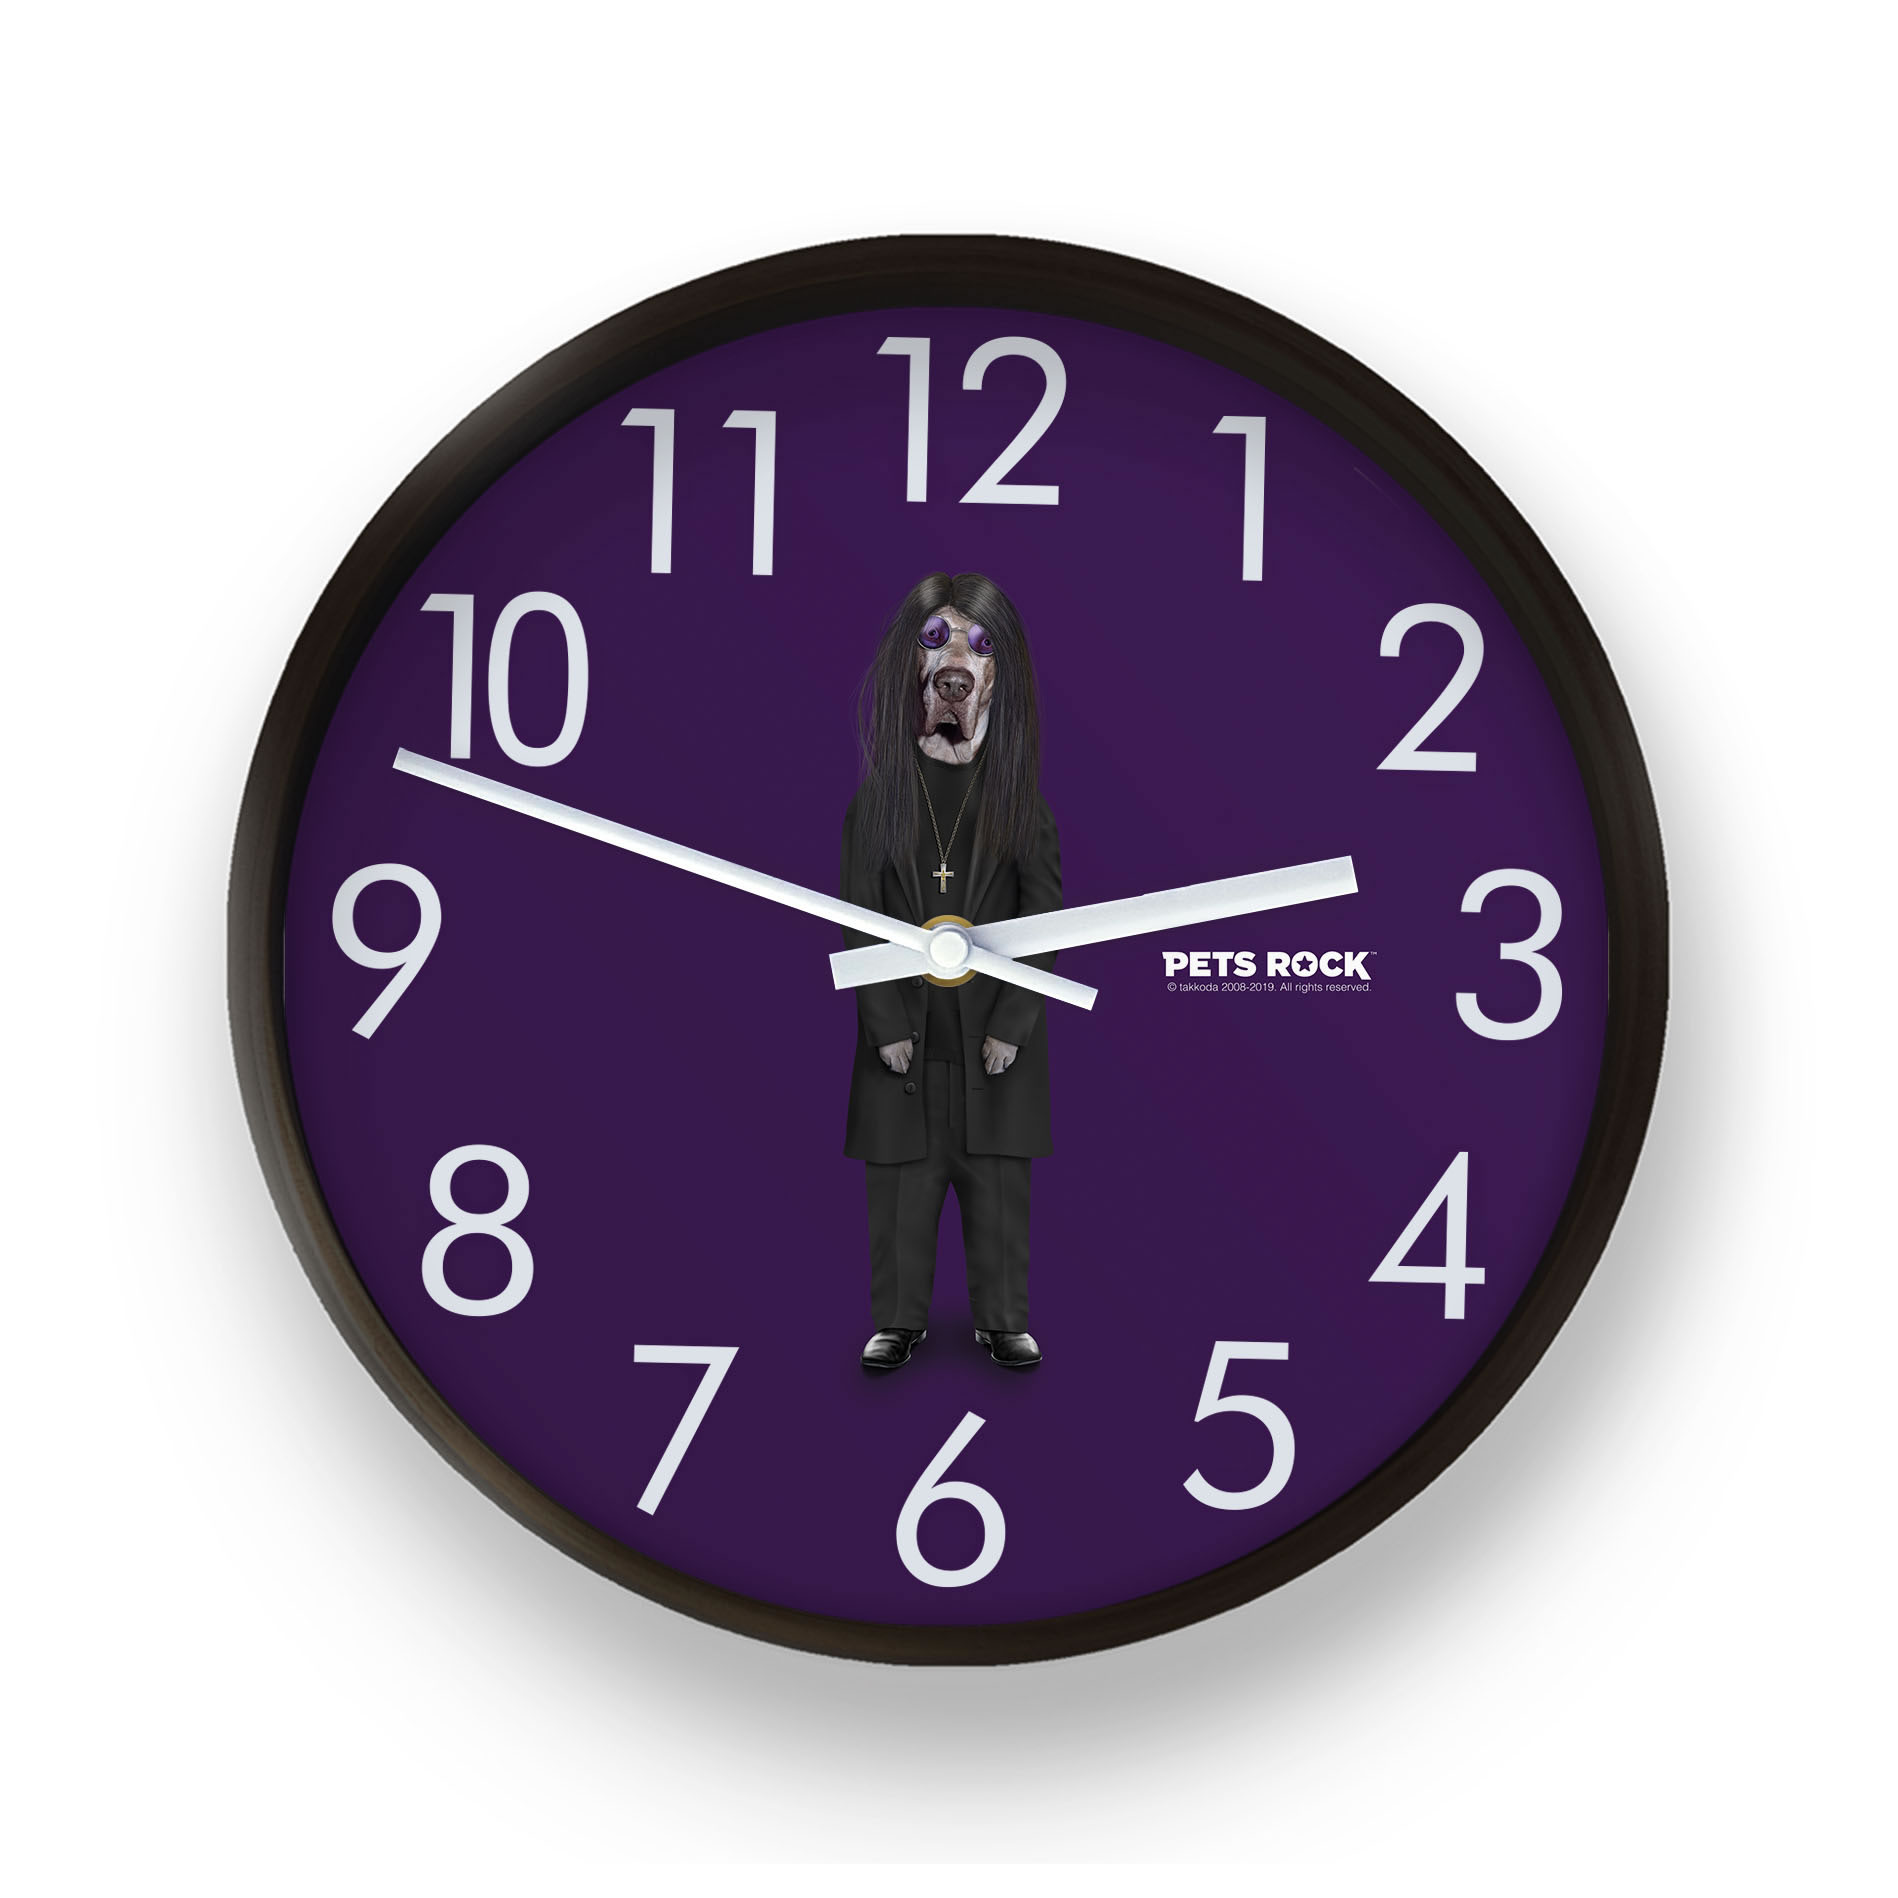 Metal Pets Rock Wall Clock